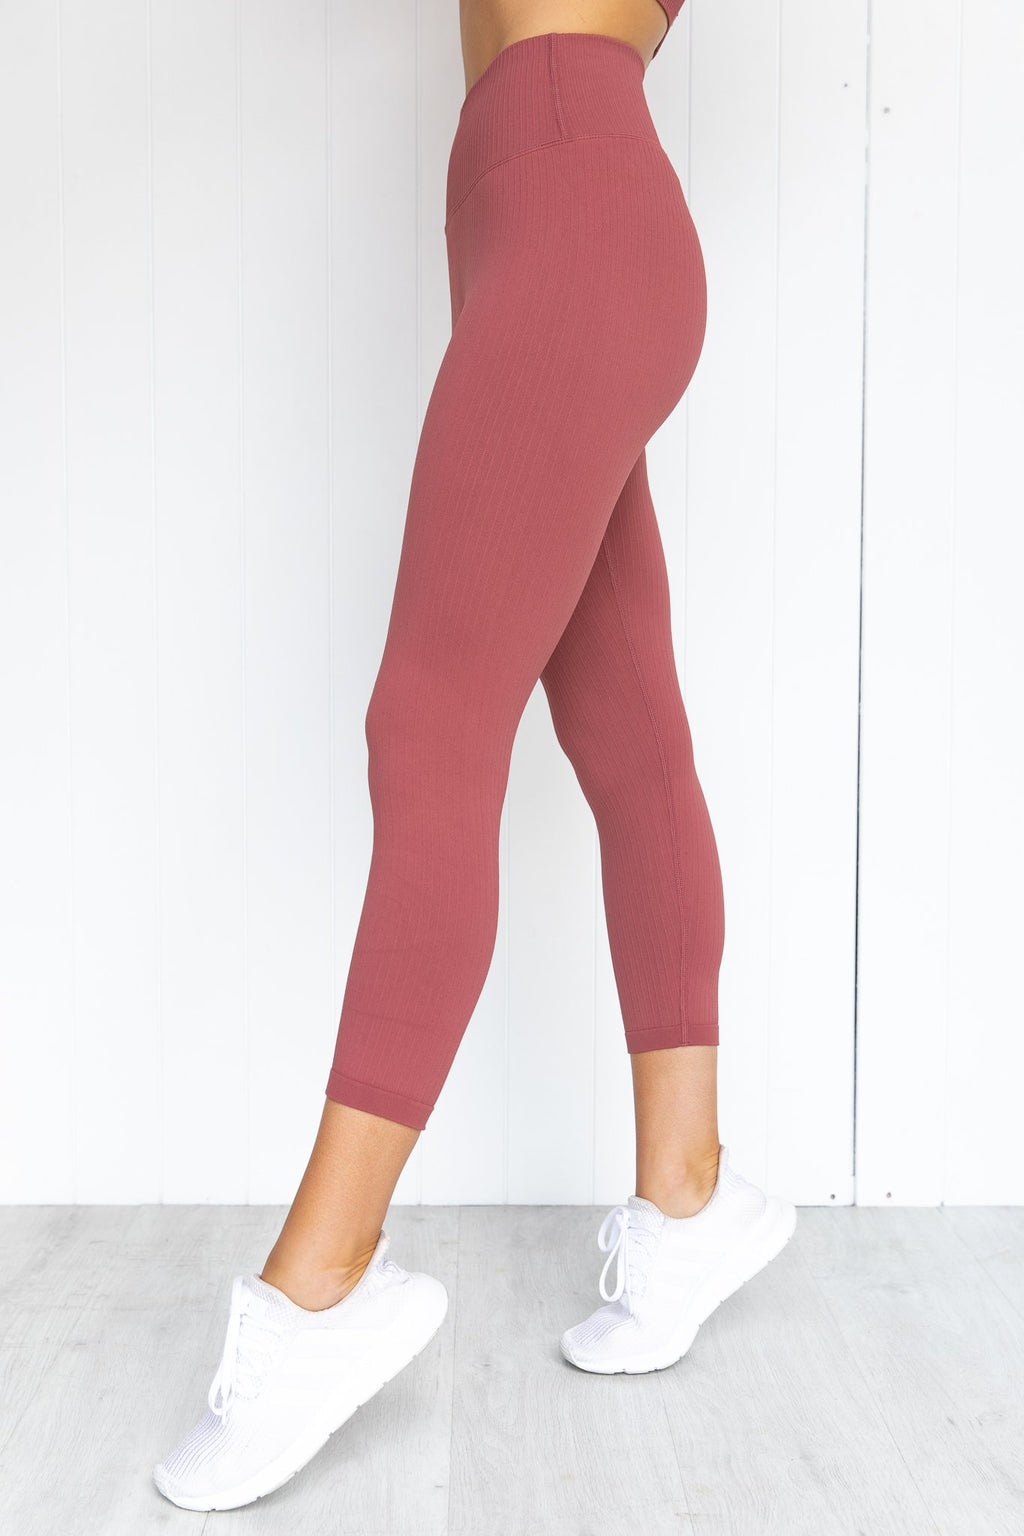 Pink Beat Ribbed Seamless 7/8 Tights